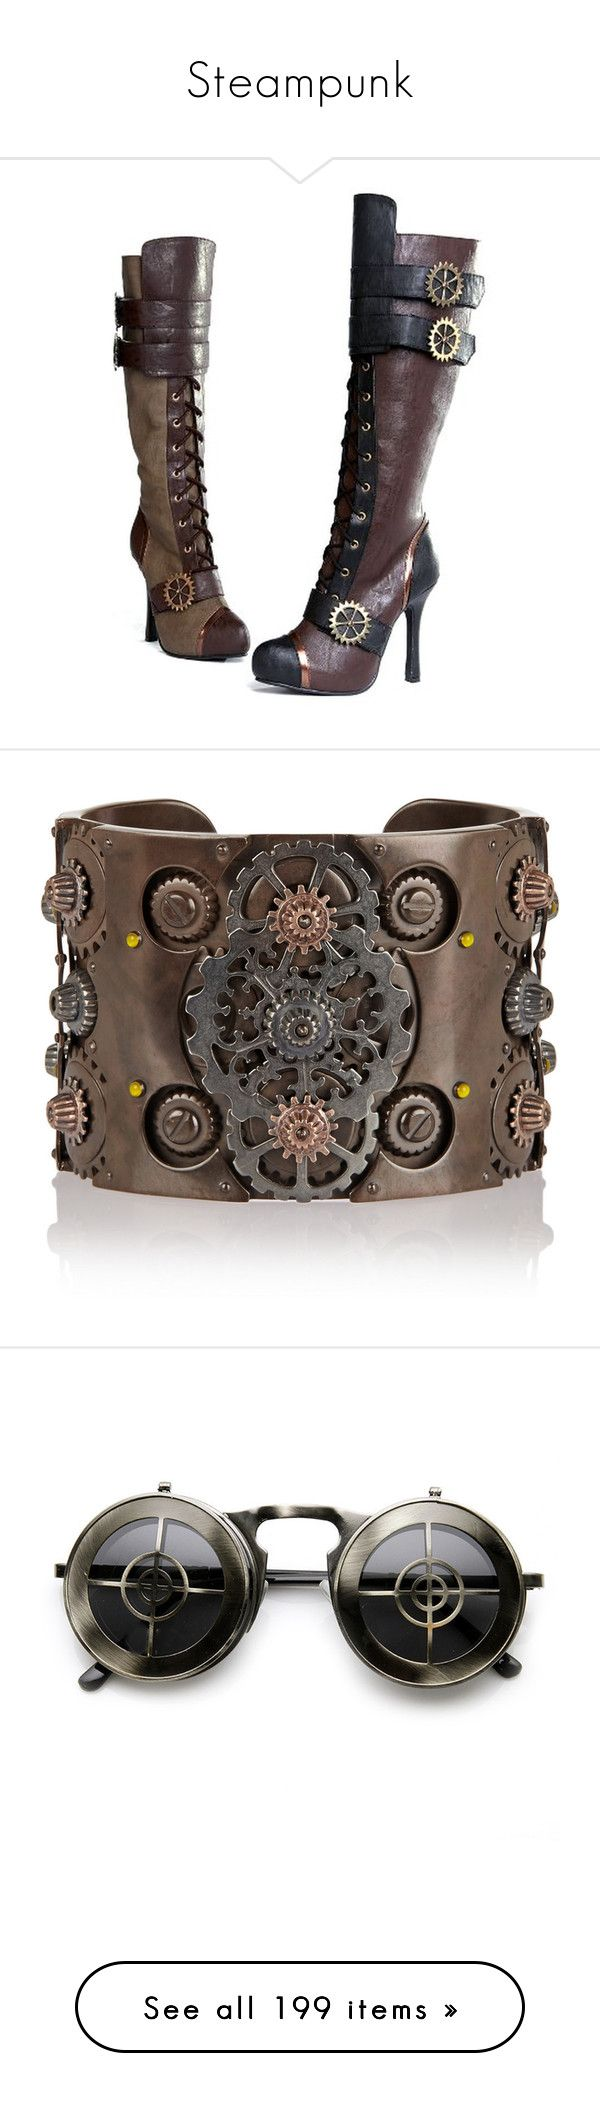 """""""Steampunk"""" by molliemae50 ❤ liked on Polyvore featuring shoes, boots, steampunk, knee high shoes, steam punk shoes, steampunk boots, knee high boots, steam punk boots, jewelry and bracelets"""